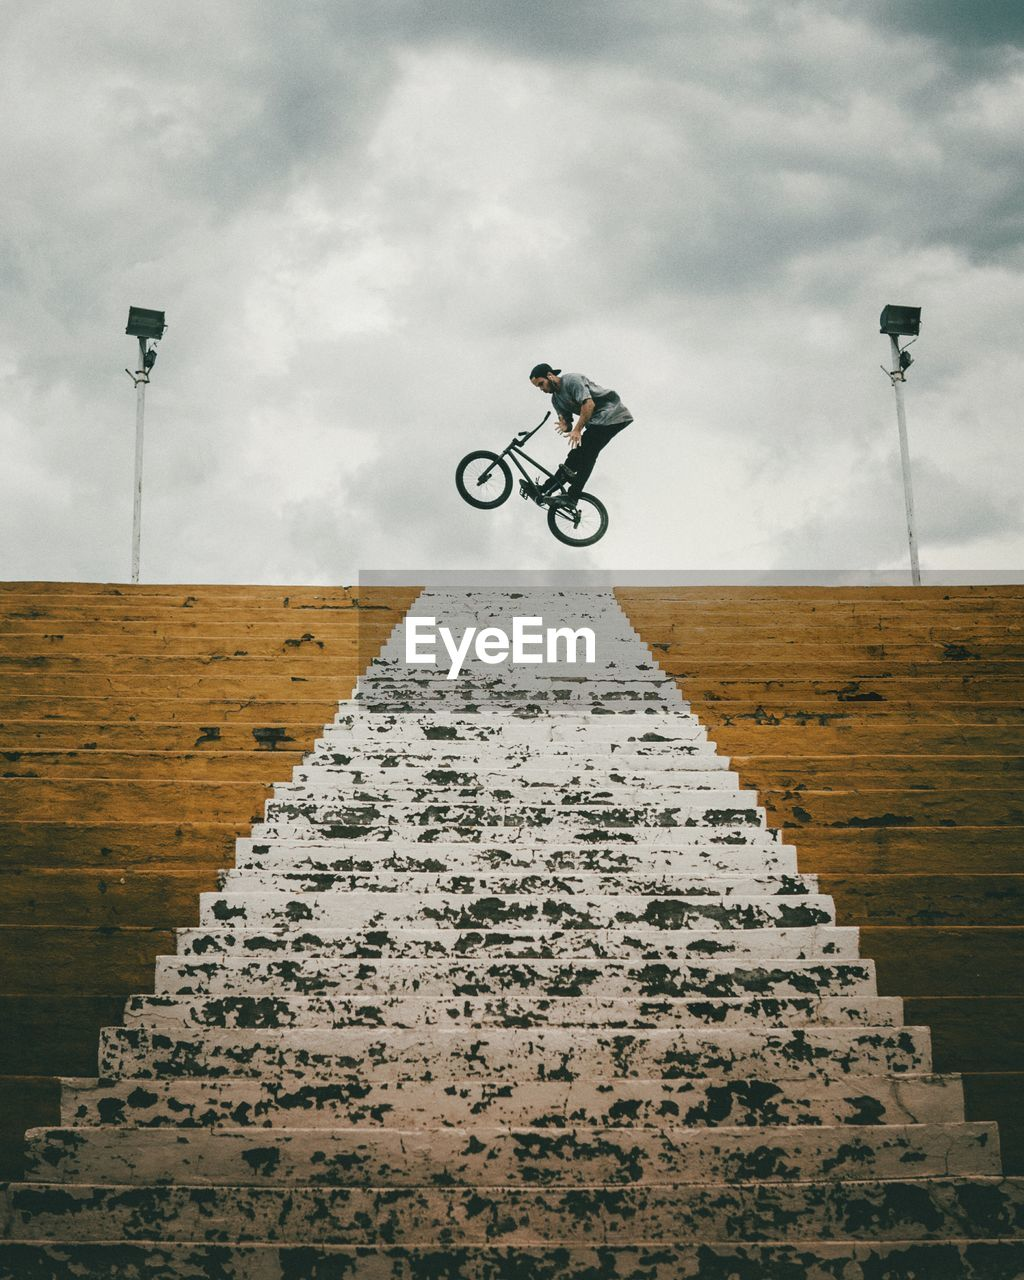 Low angle view of young man jumping with bicycle on steps against cloudy sky